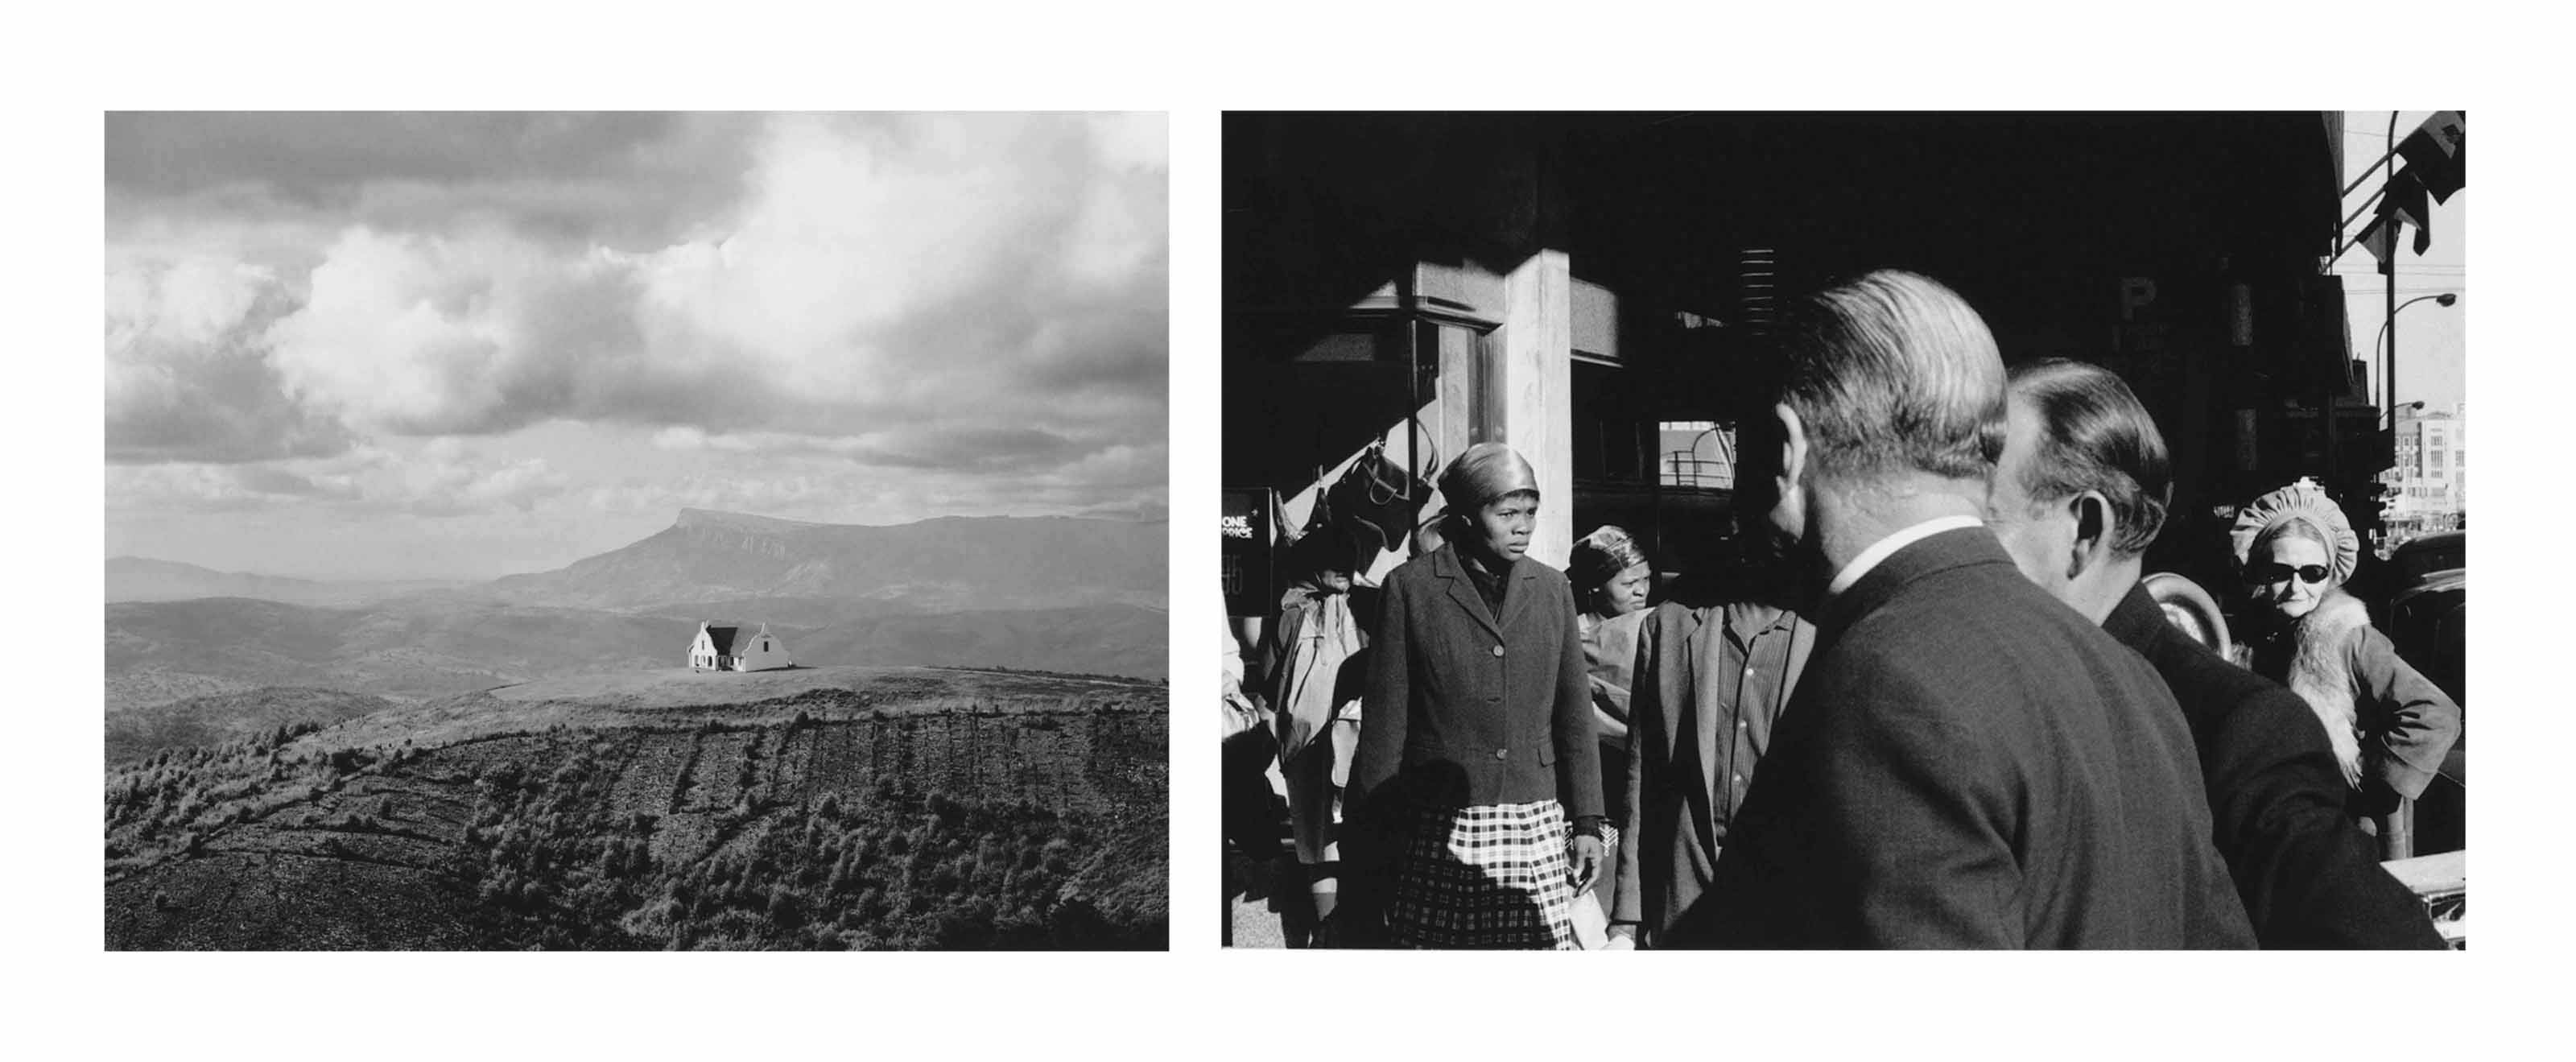 Images of South Africa, 1966 and 1989